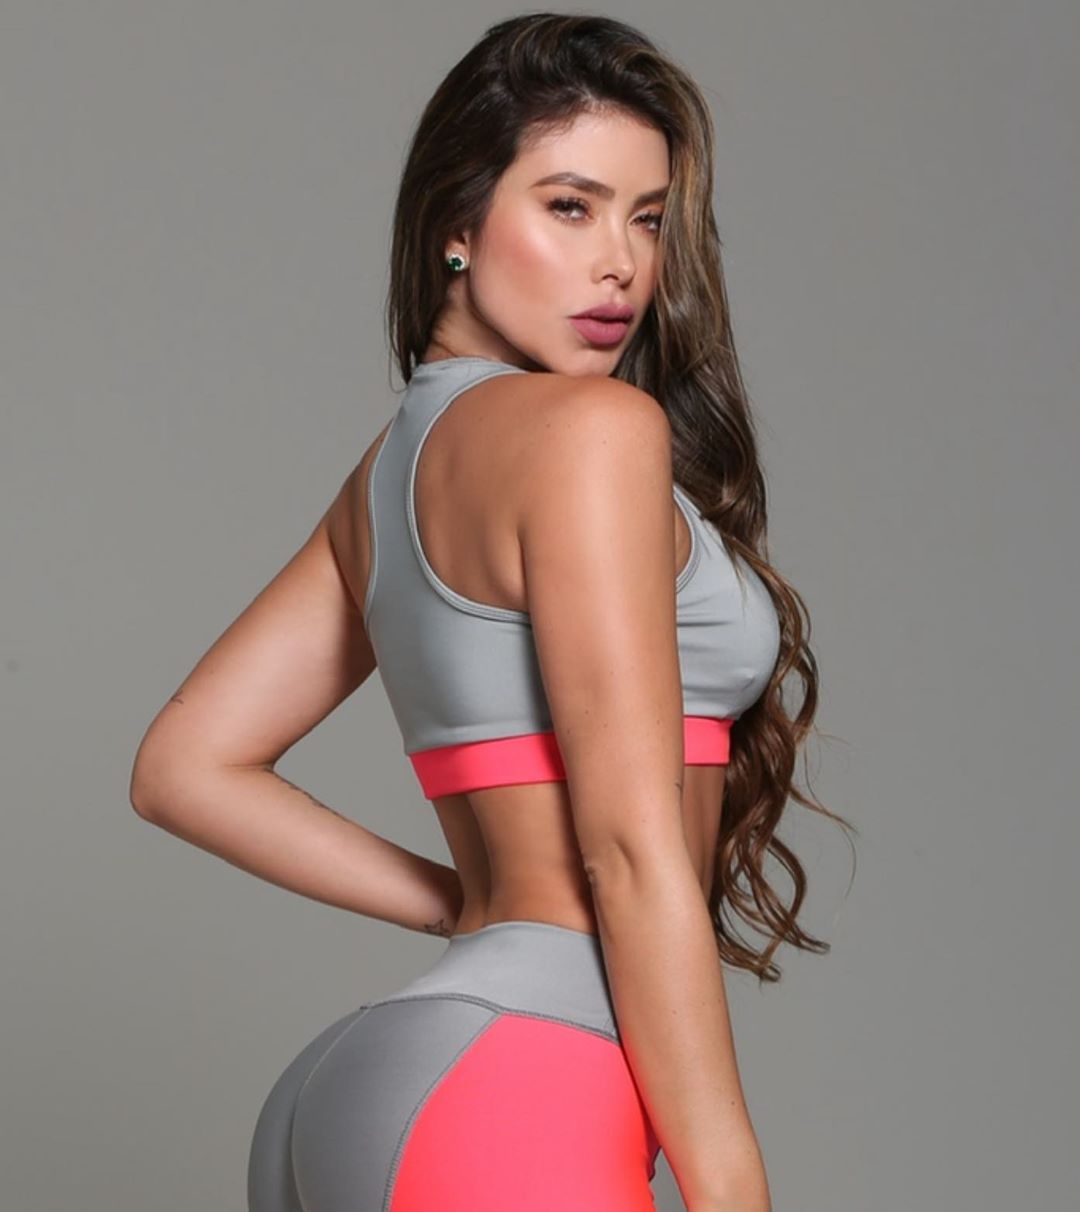 Paola-Canas-Wallpapers-Insta-Fit-Bio-14